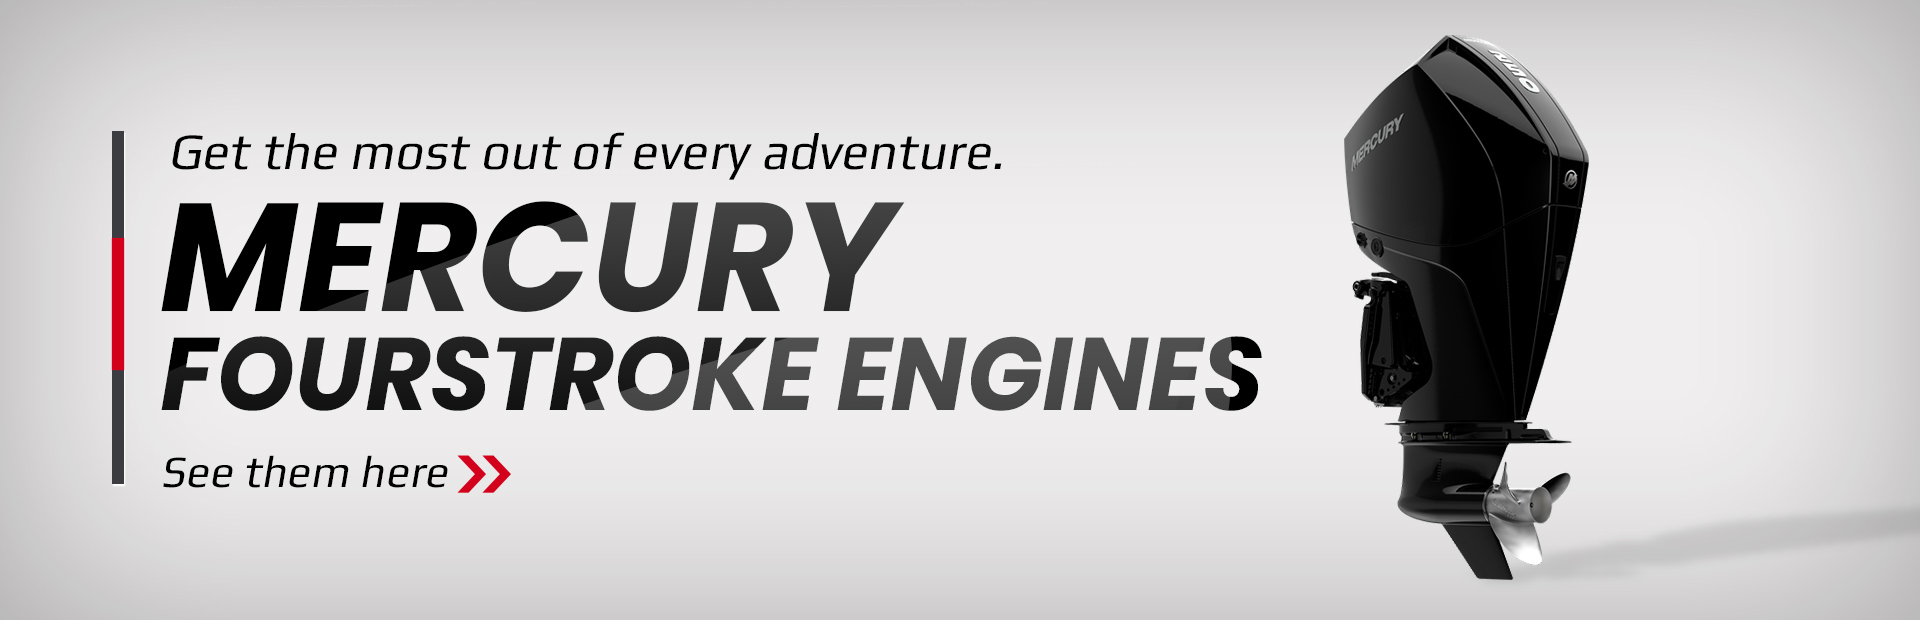 Get the most out of every adventure with Mercury FourStroke engines. See the models here.